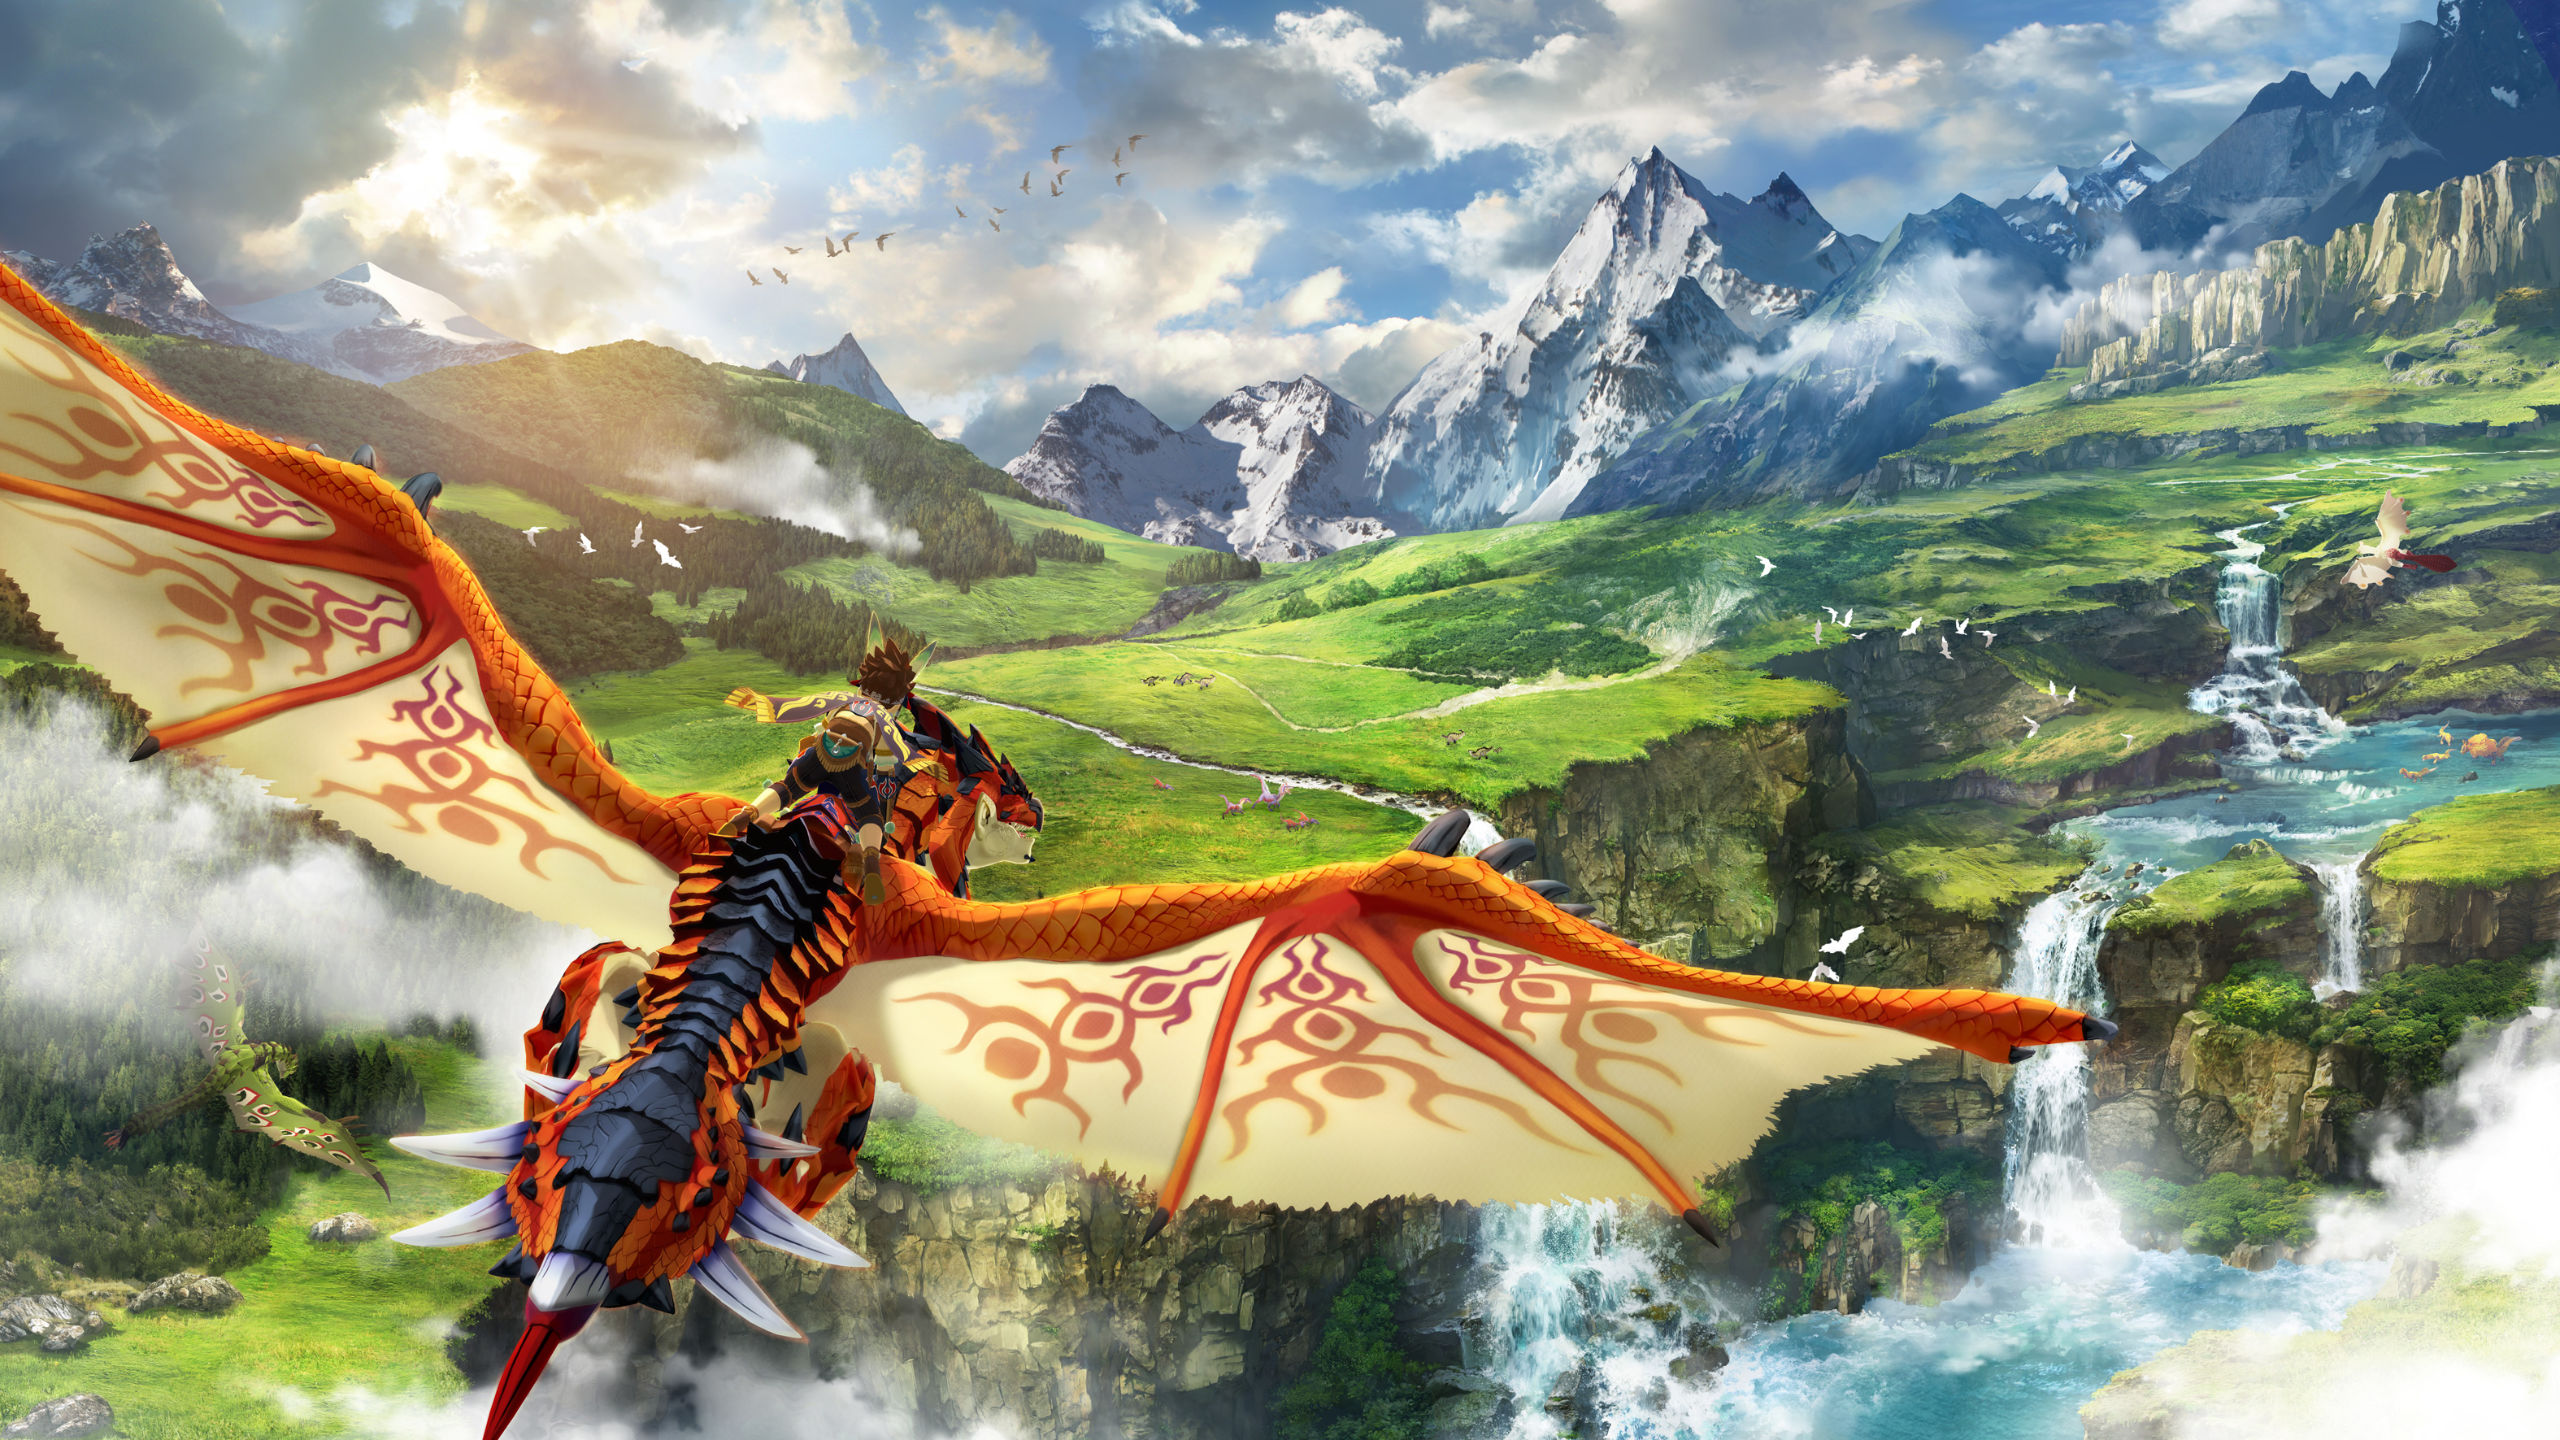 A Rider takes flight in the key art for Monster Hunter Stories 2: Wings of Ruin, coming to Nintendo Switch and Windows PC Via Steam this July.